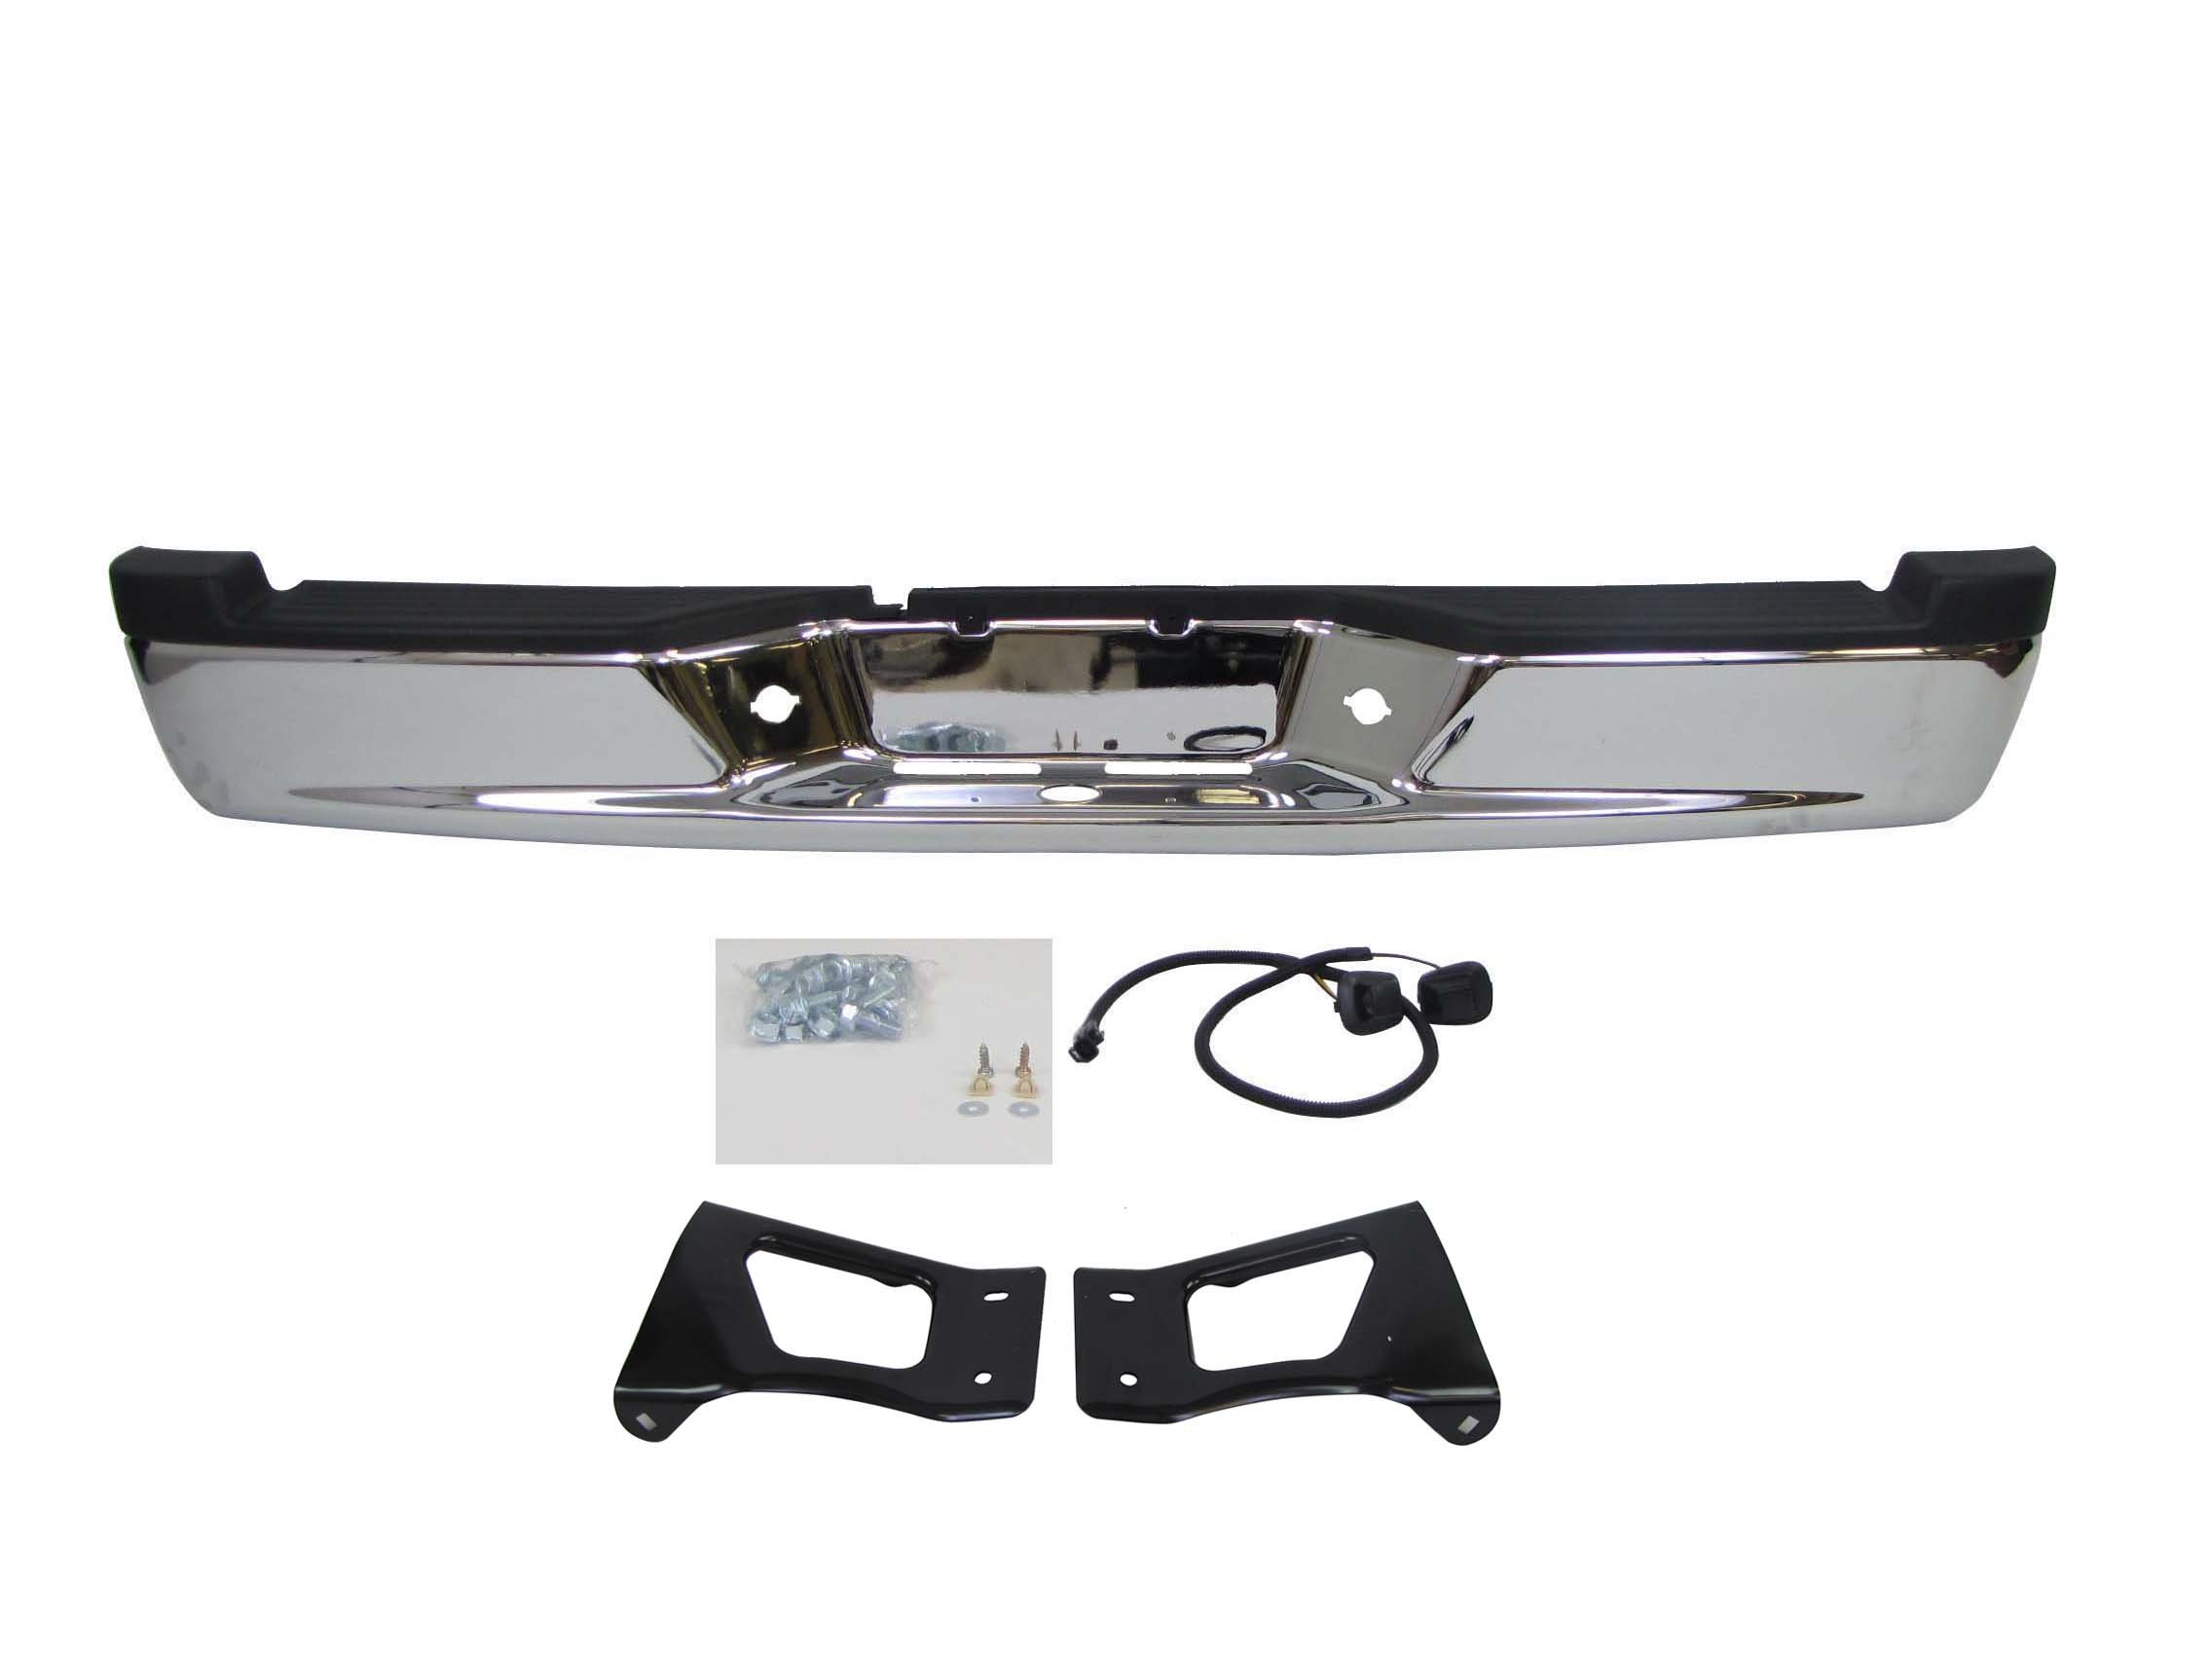 WITH SENSOR HOLE FOR 2013-2016 FRONTIER PICKUP REAR STEP BUMPER CHROME FULL ASSY ASSY WITH HITCH BAR PAD BRACKET LIC LAMP